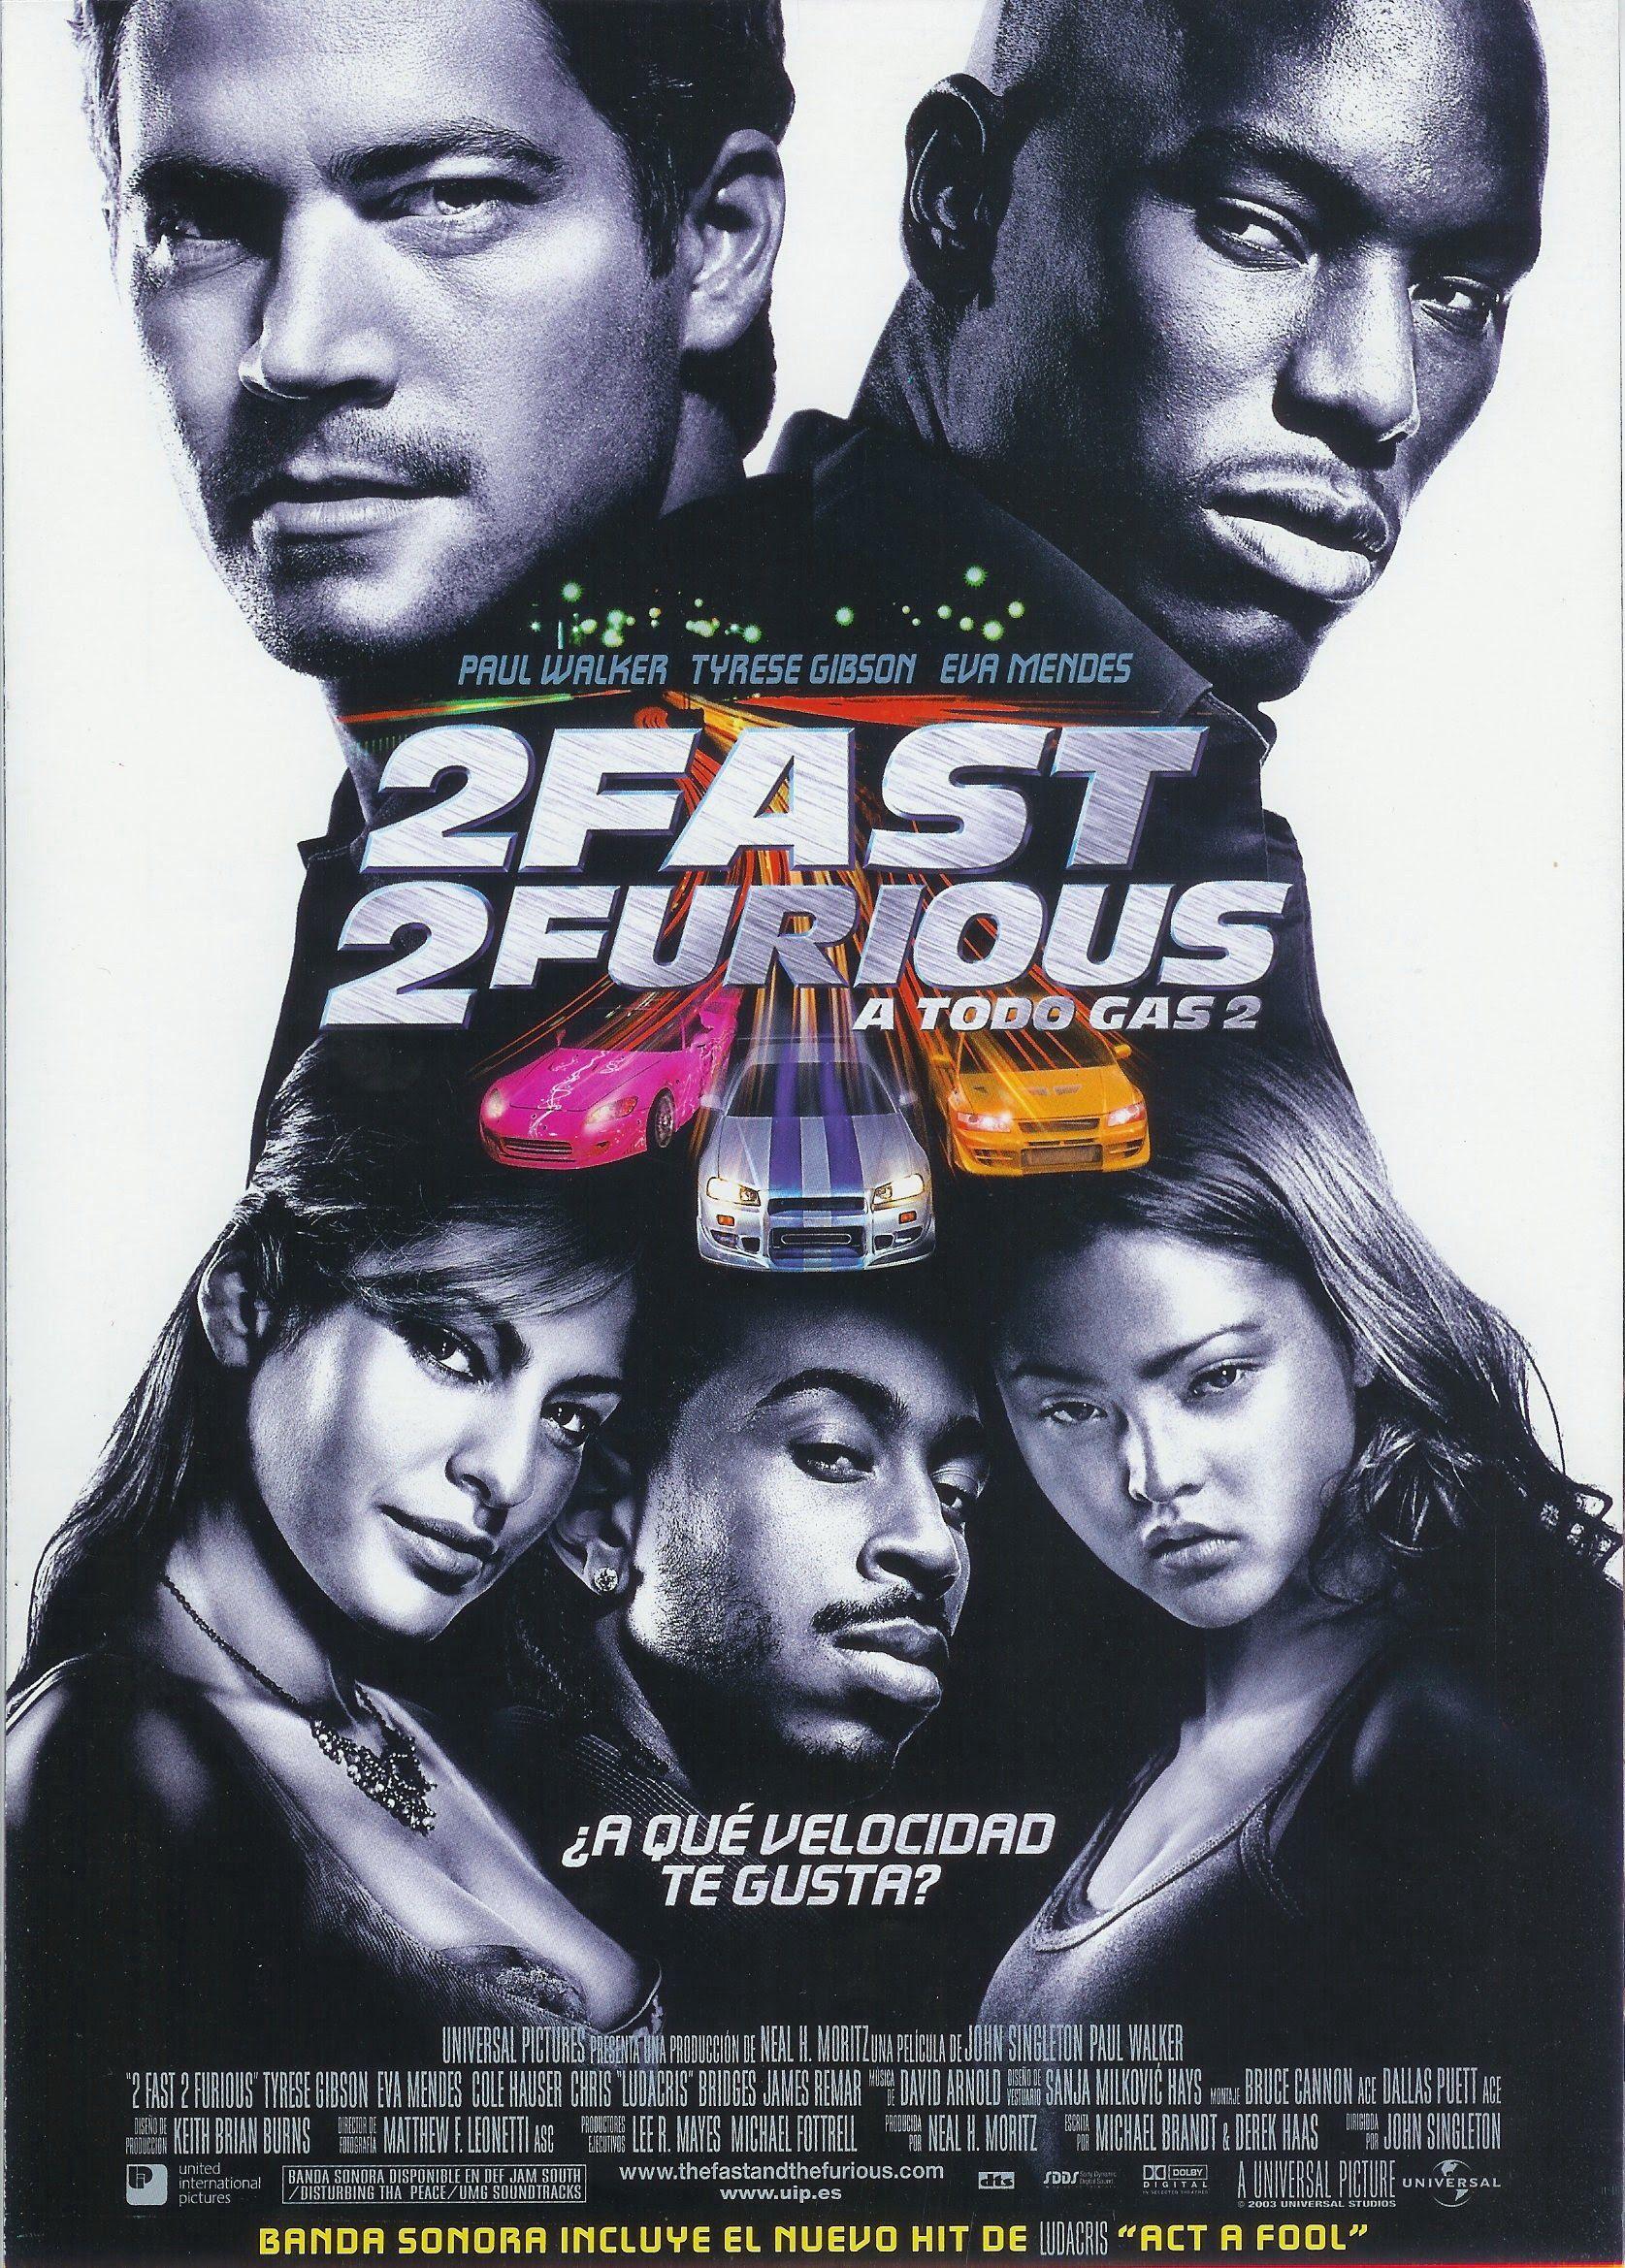 2003 - 2 Fast 2 Furious. A todo gas 2 - 2 Fast 2 Furious